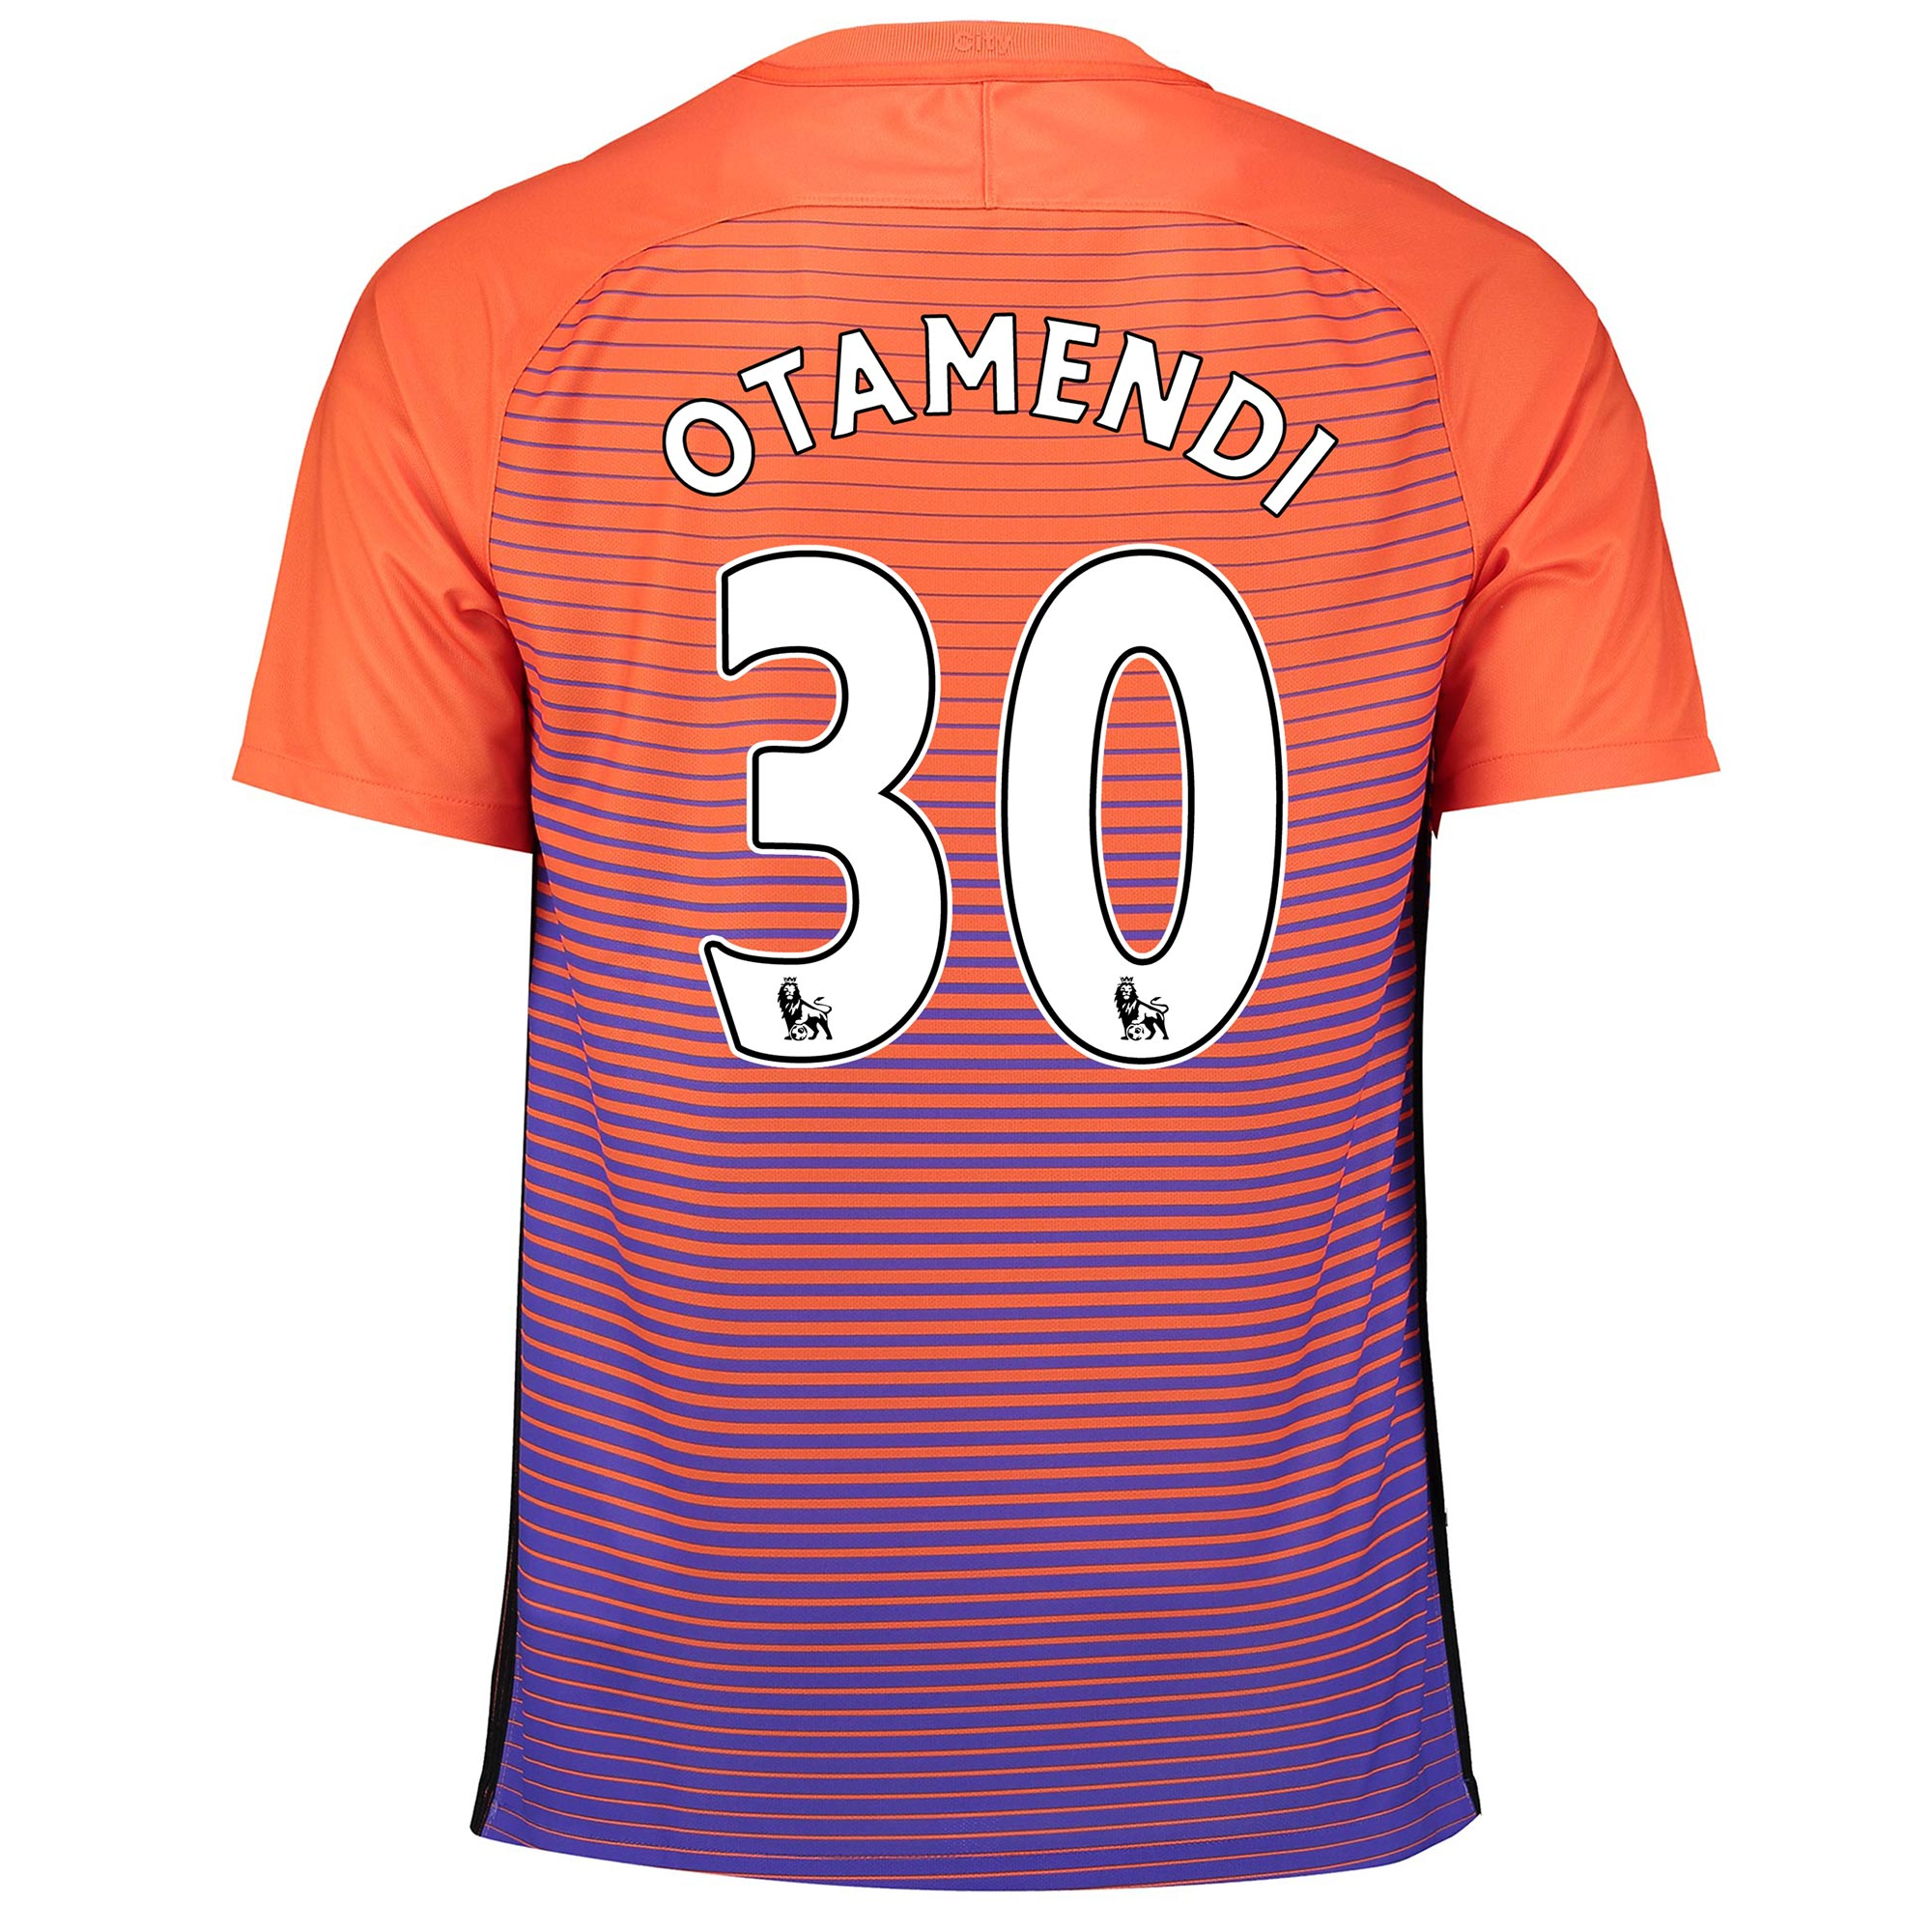 Manchester City Third Stadium Shirt 2016-17 with Otamendi 30 printing